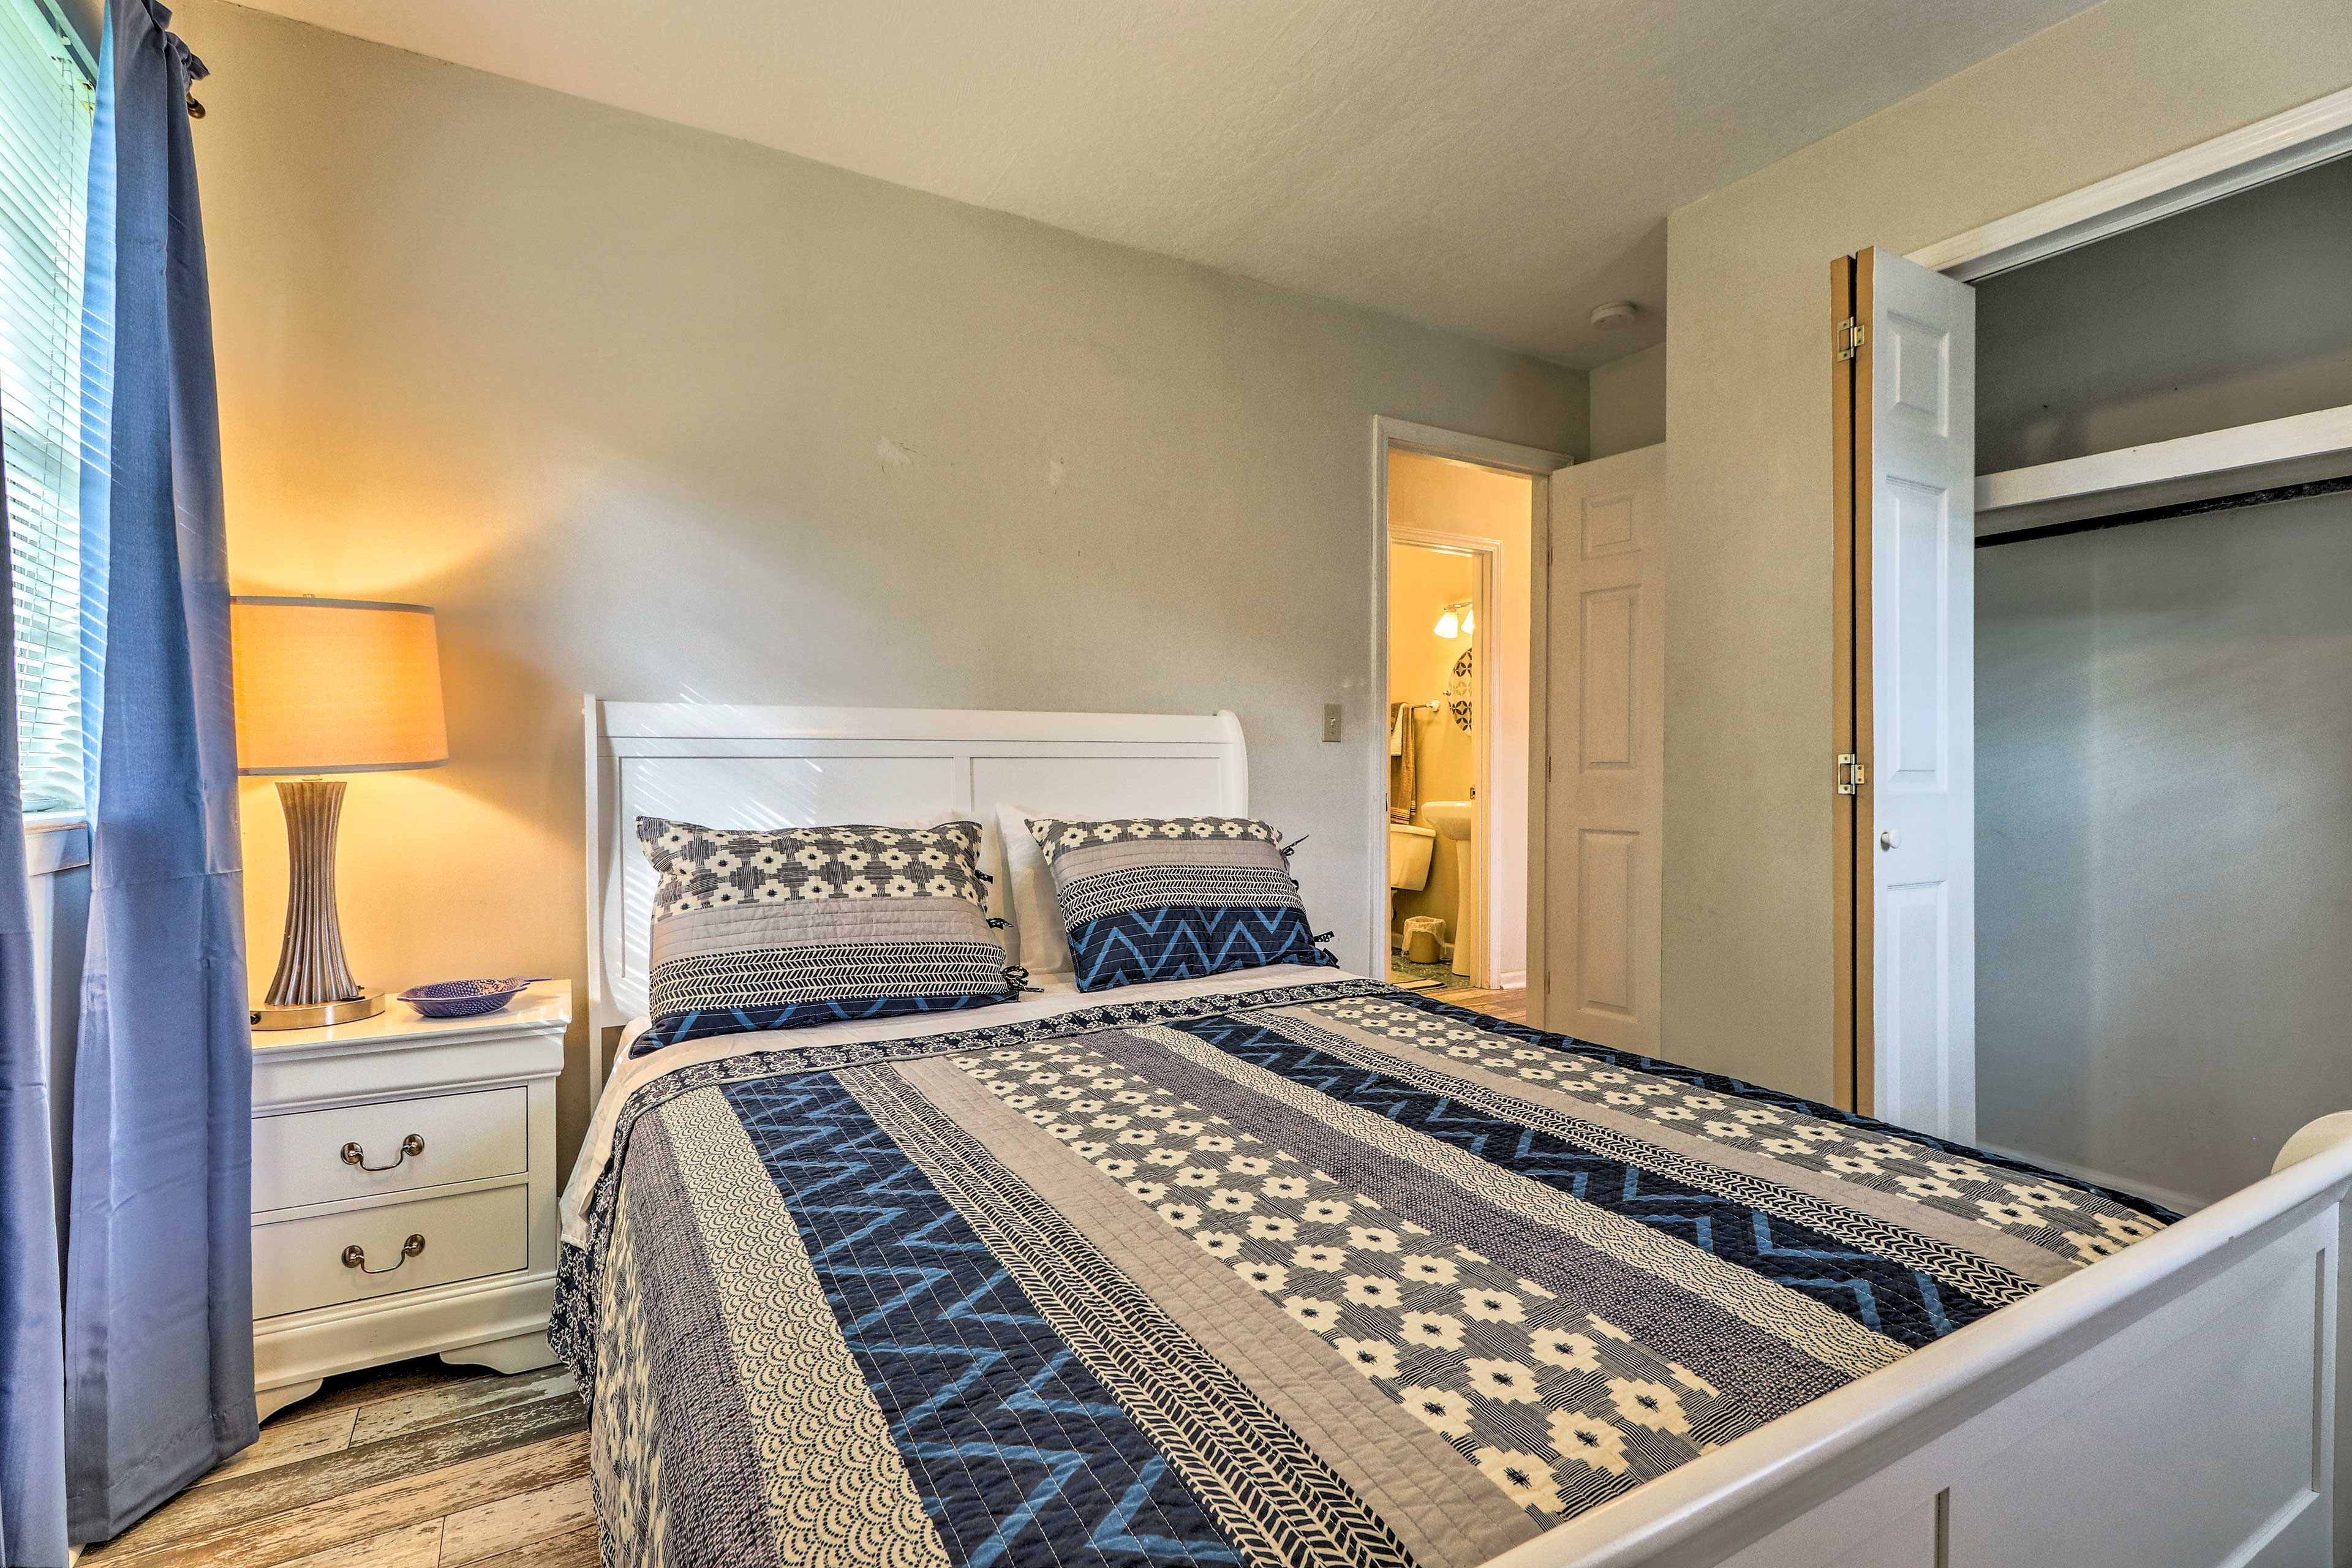 The second bedroom also boasts a queen-sized bed.